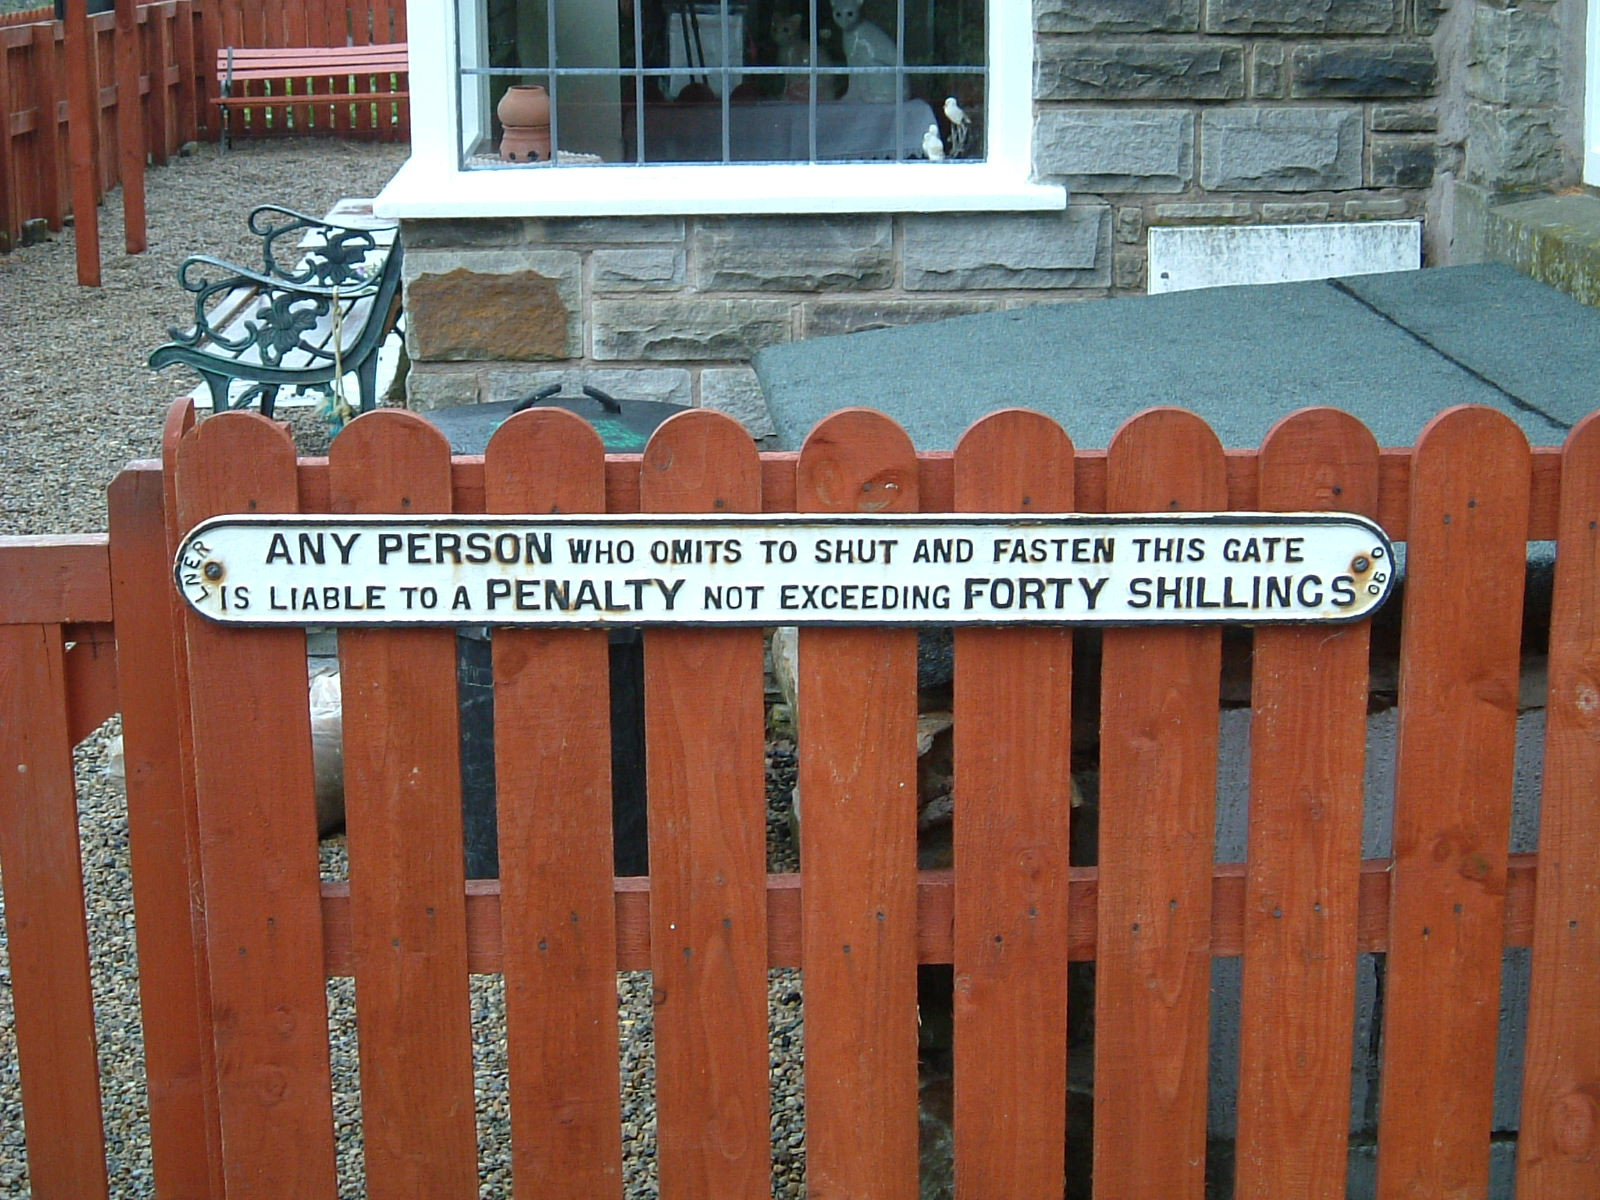 A sign on a gate saying the charge for not shutting it is 40 shillings